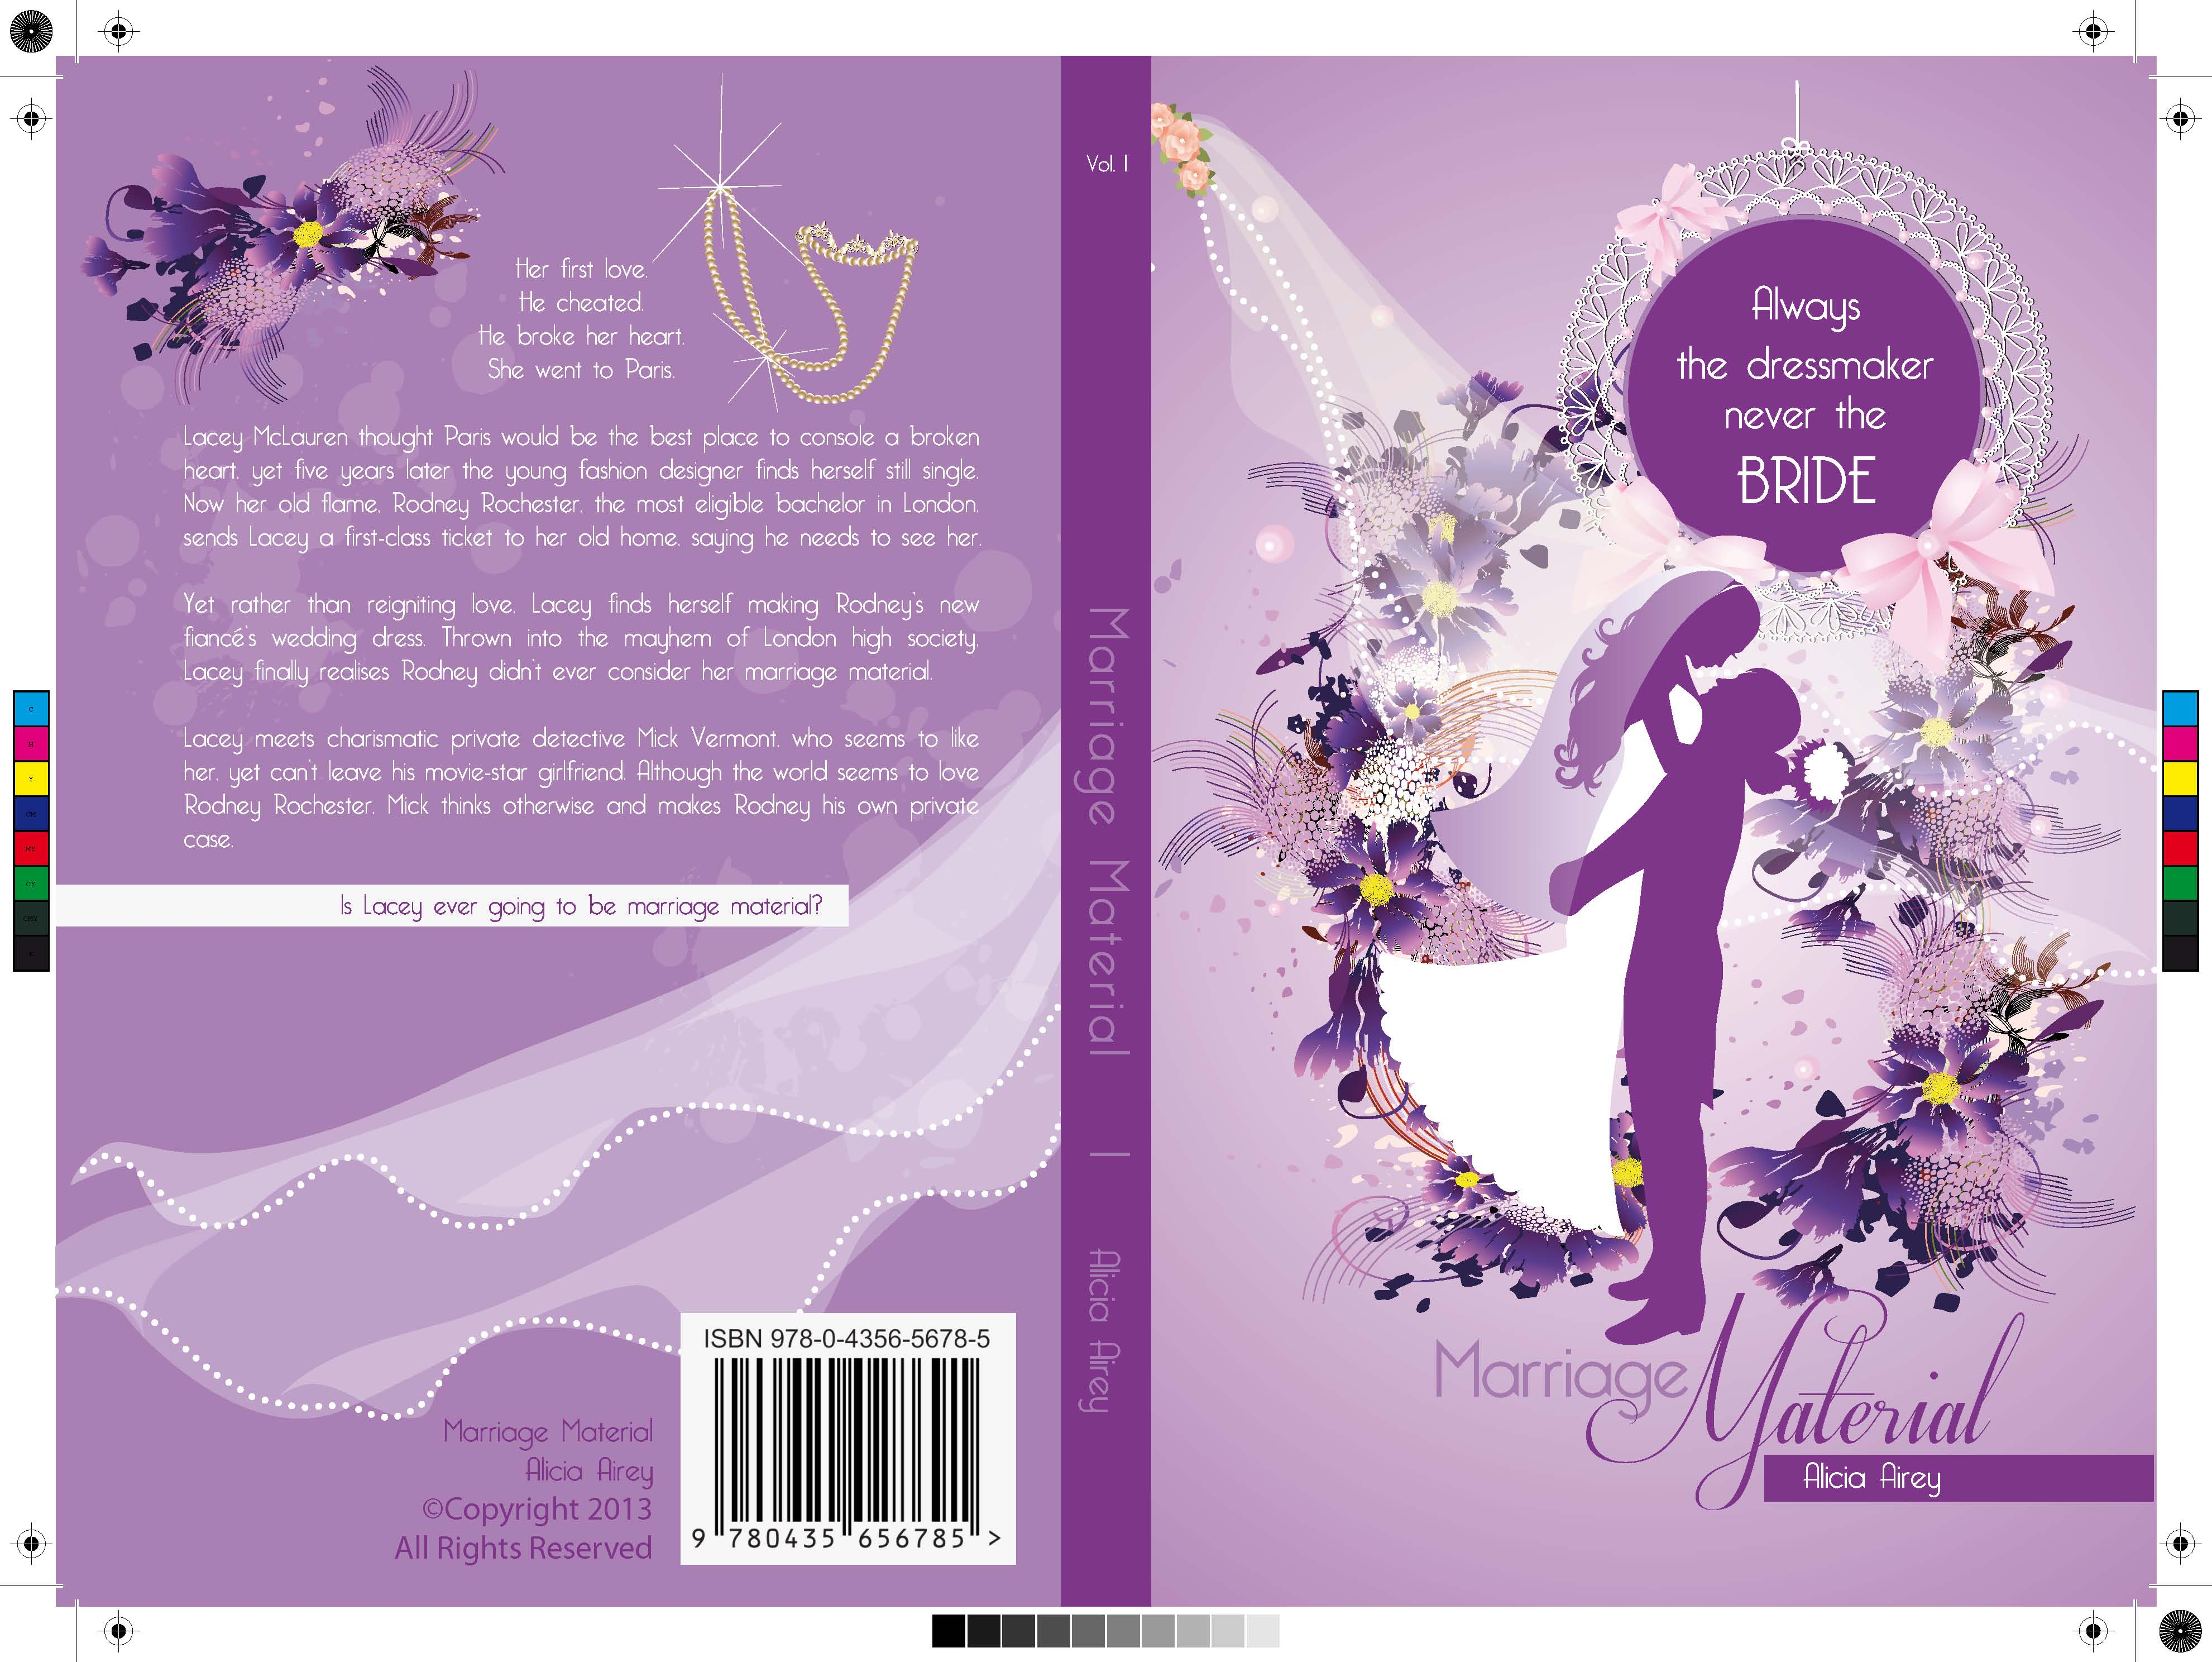 Book Cover Design Materials : Book cover design for chic lit novel marriage material